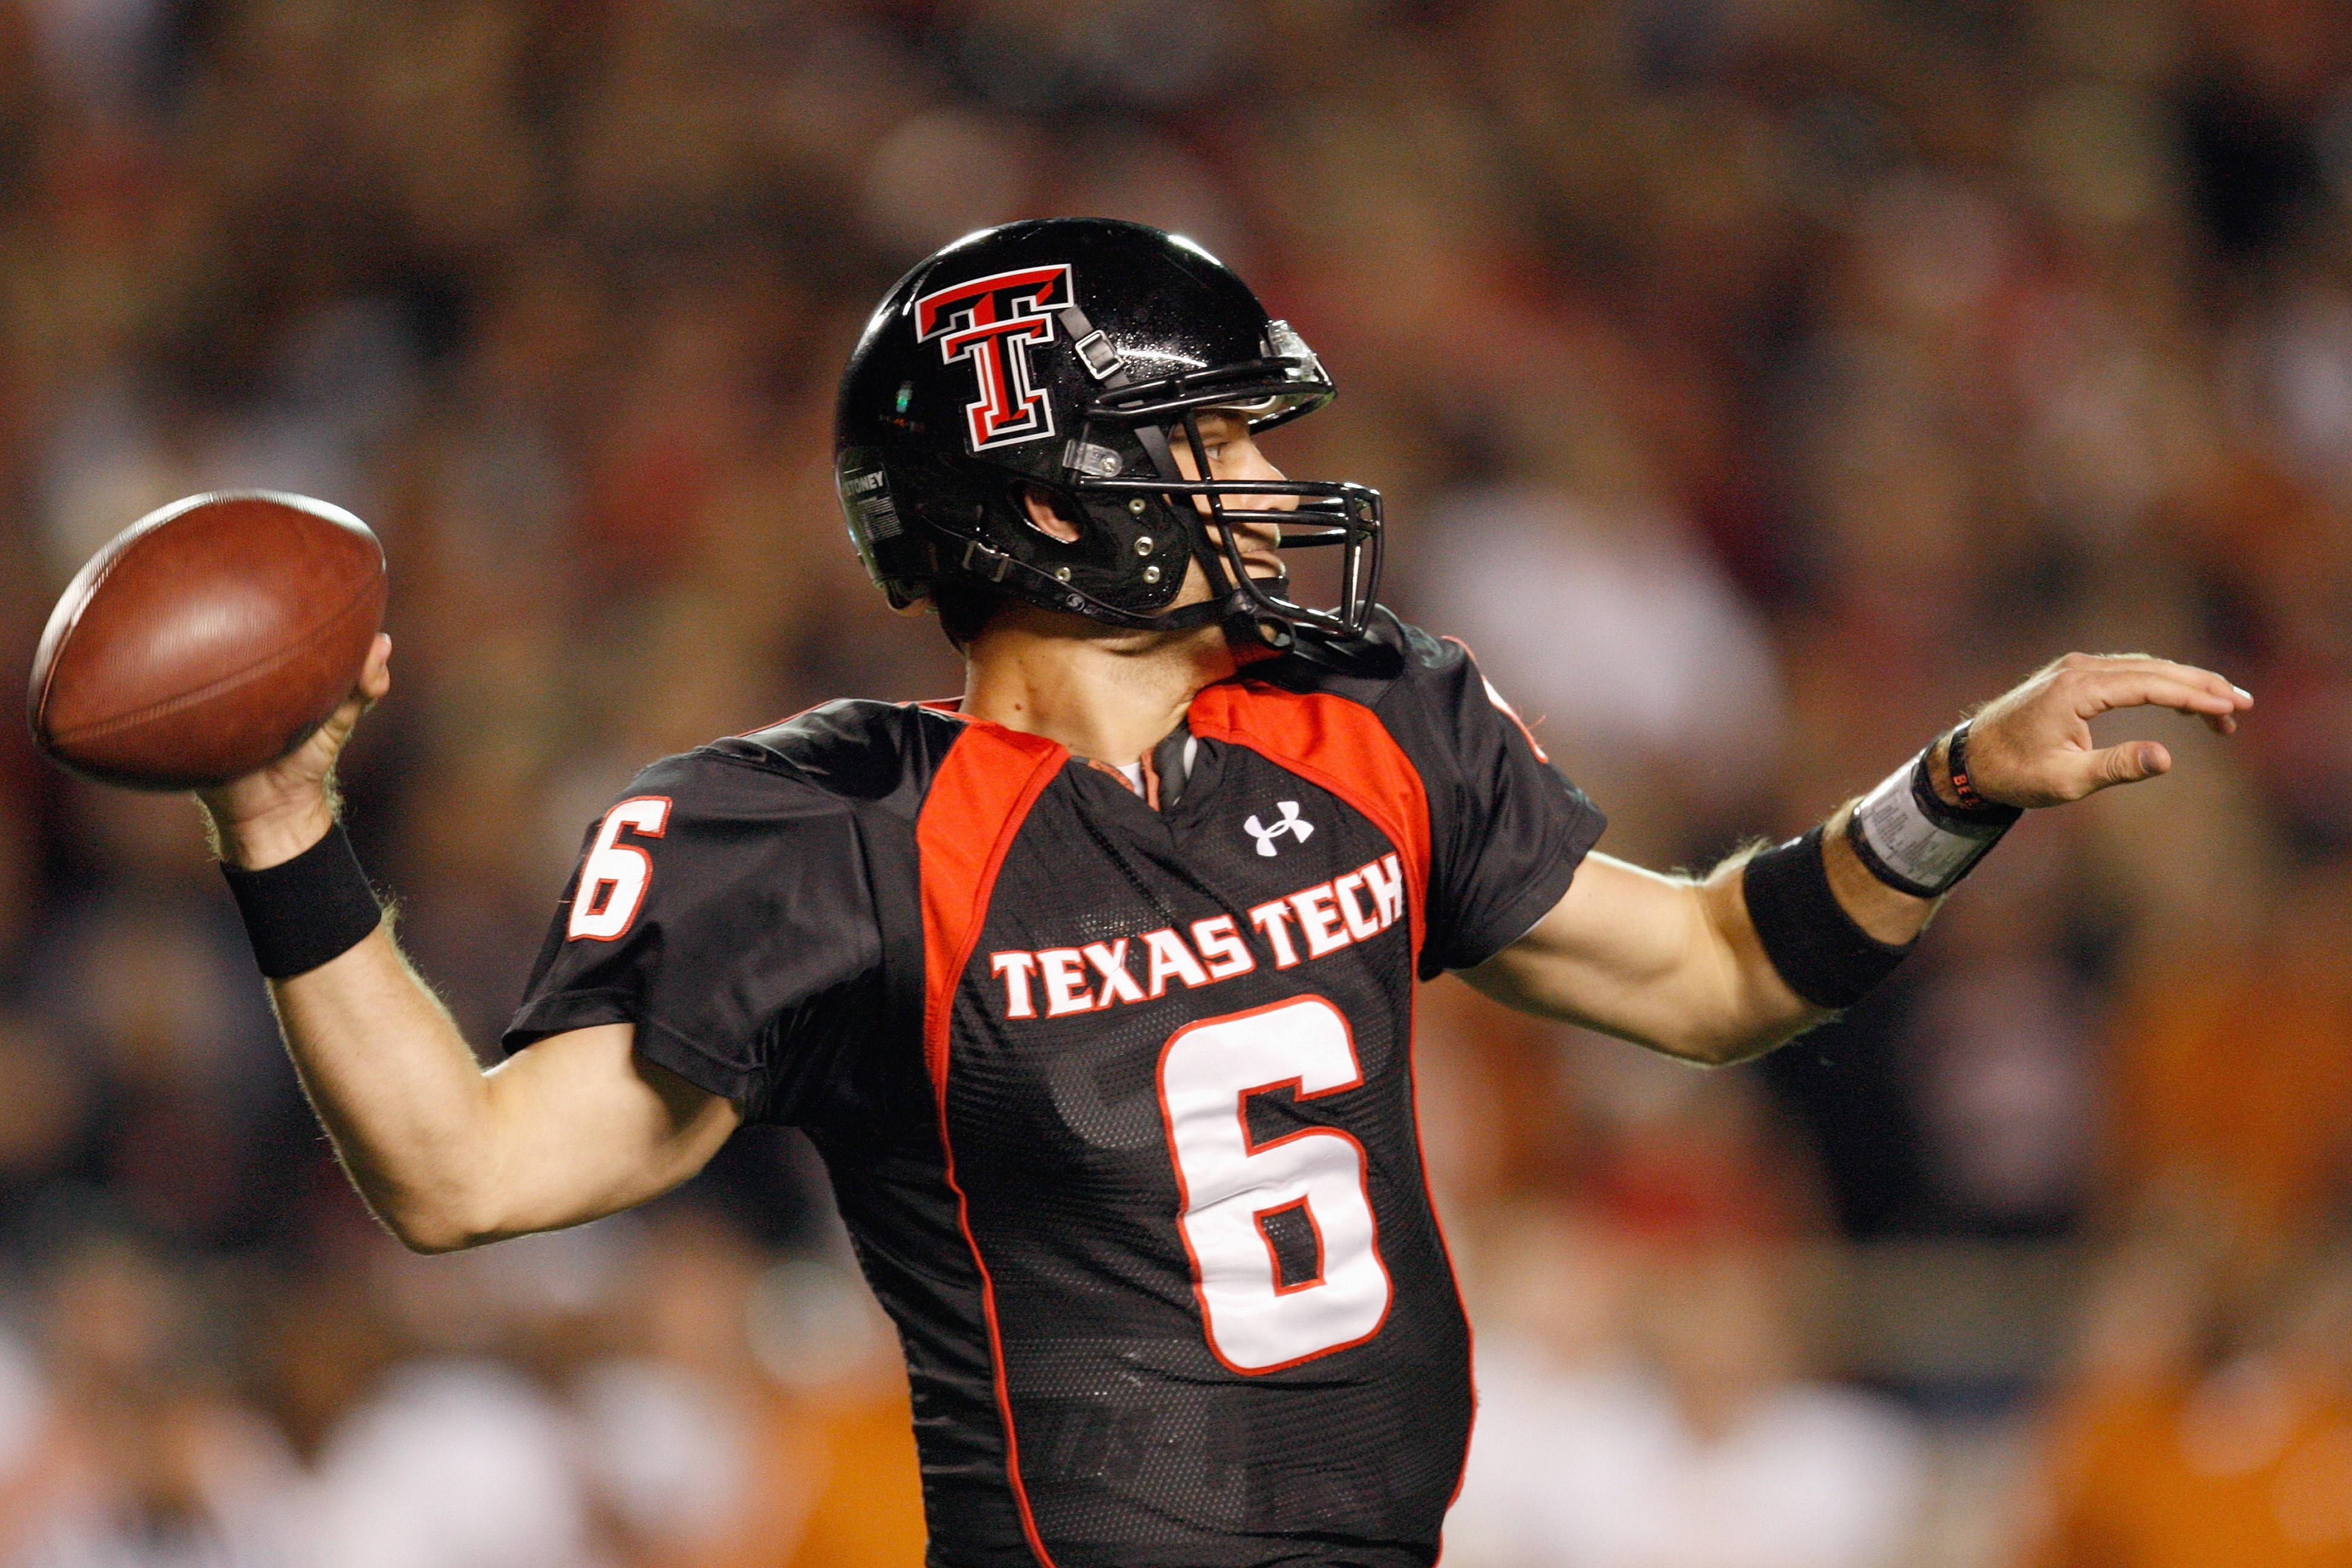 LUBBOCK, TEXAS - NOVEMBER 1:  Quarterback Graham Harrell #6 of the Texas Tech Red Raiders looks to pass the ball down the field during the game against the Texas Longhorns on November 1, 2008 at Jones Stadium in Lubbock, Texas. (Photo by: Jamie Squire/Get